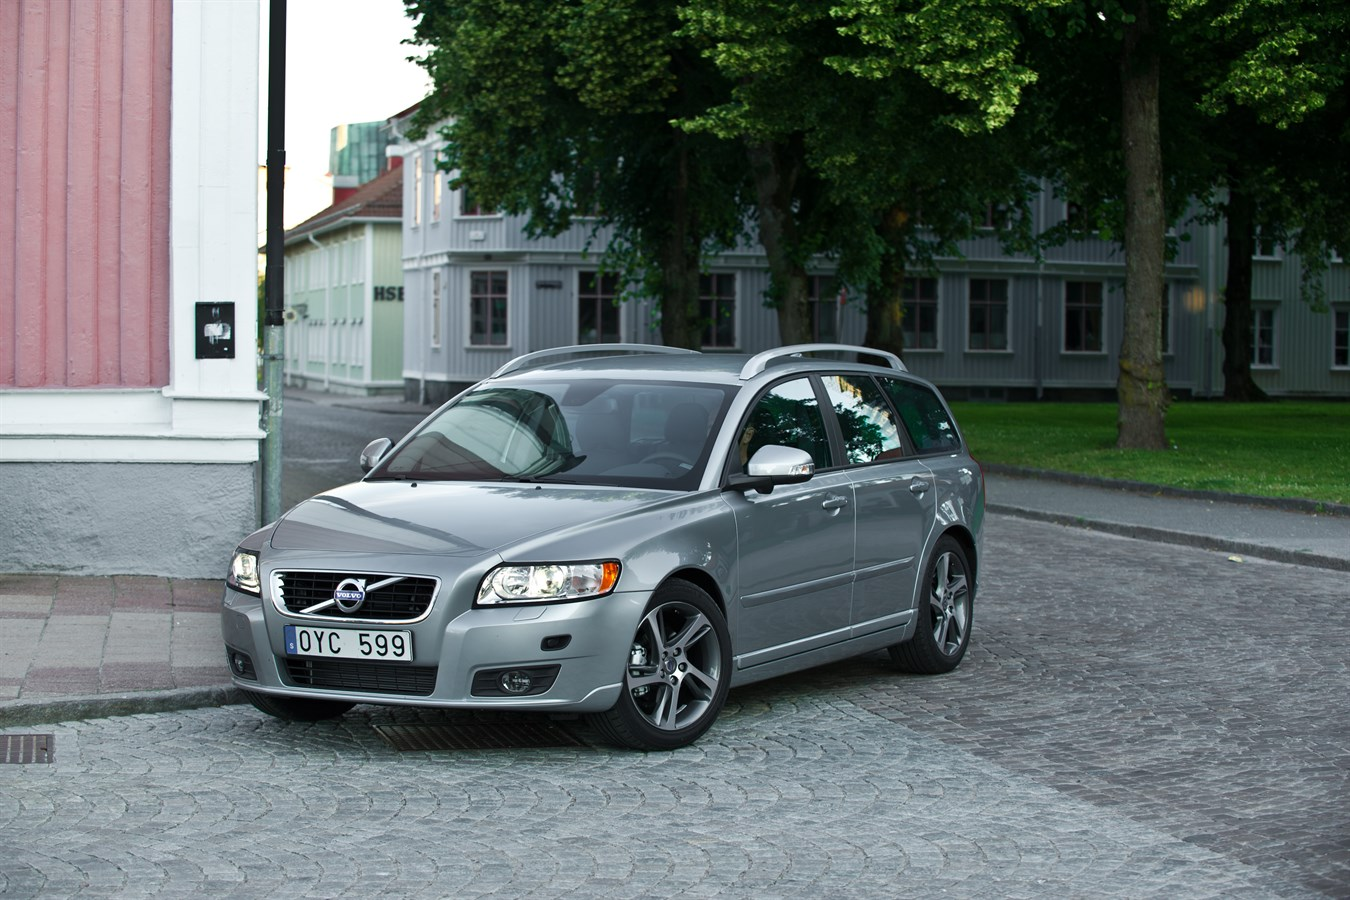 Volvo V50 Model Year 2012 Volvo Car Group Global Media